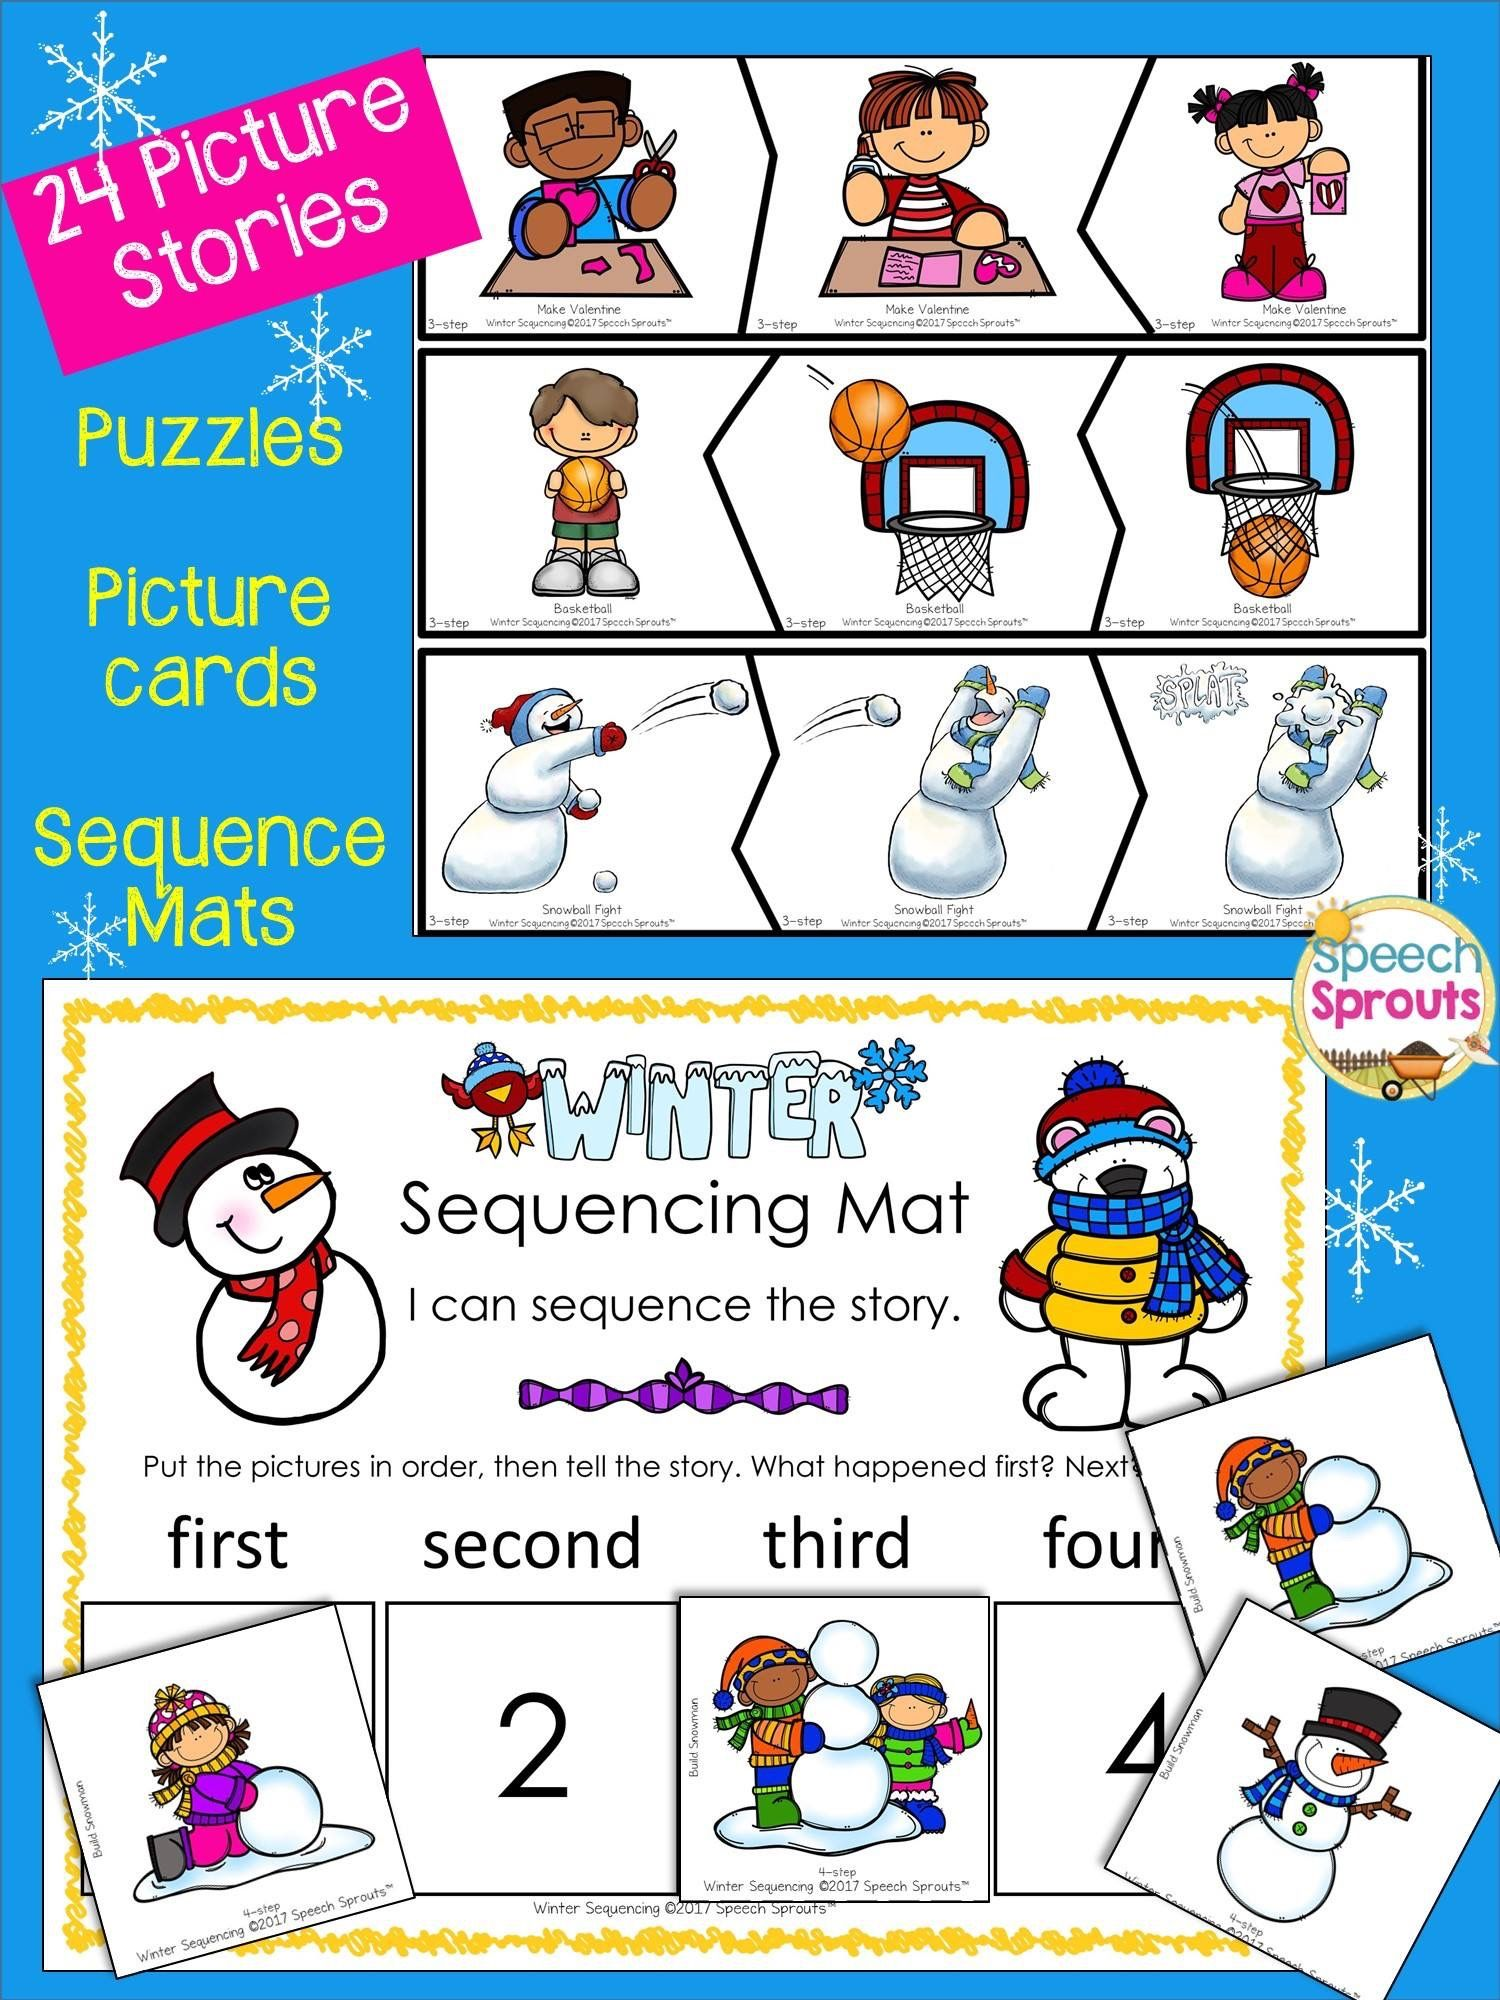 photograph about 4 Step Sequencing Pictures Printable identify Pin upon Preschool Language Functions